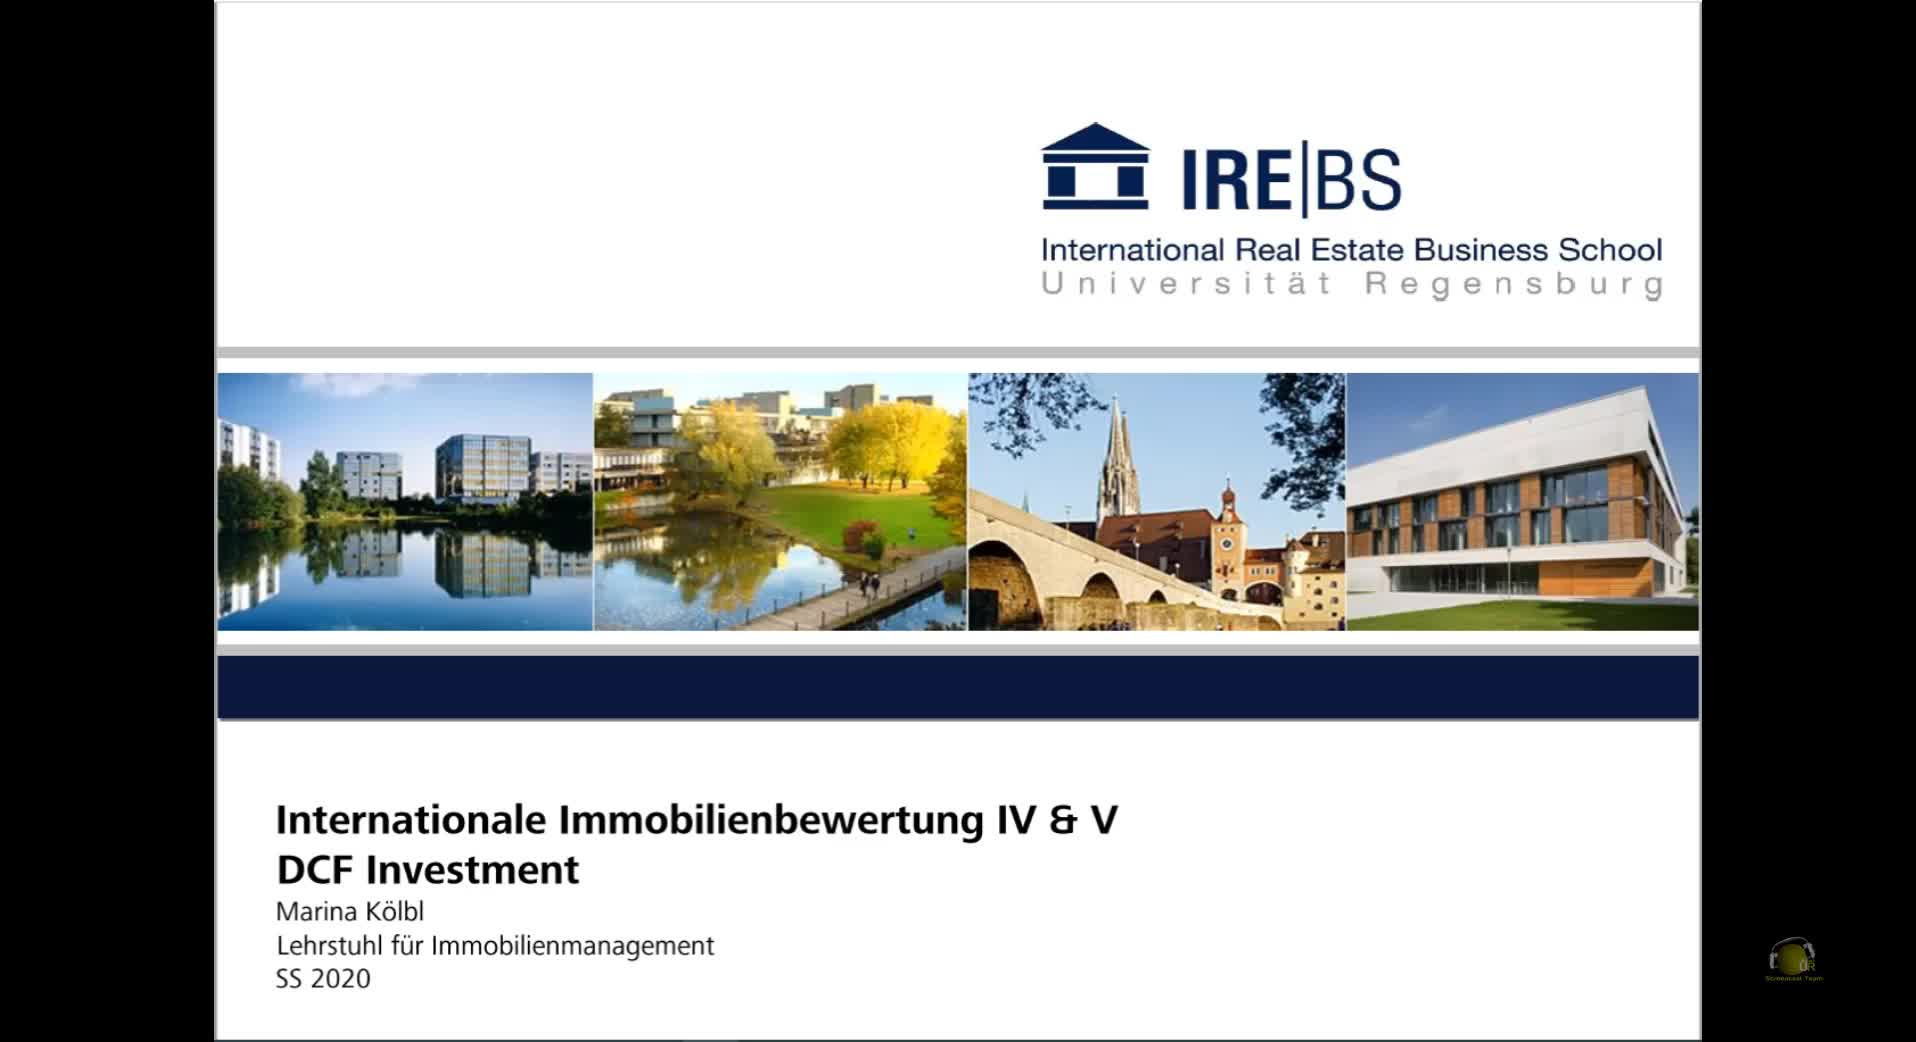 Immobilienmanagement II - Übung 4